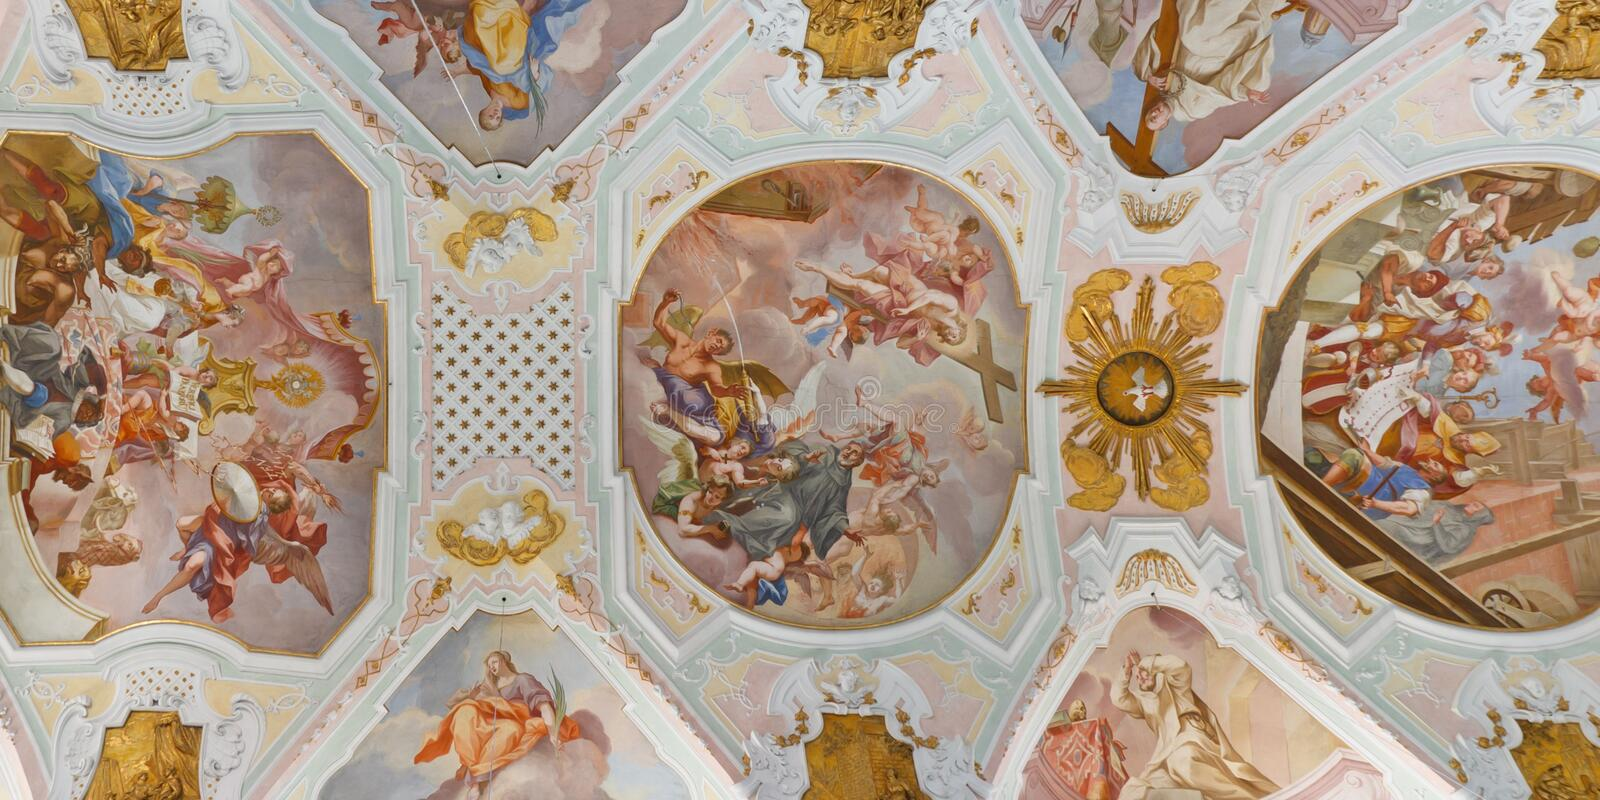 Download Ceiling Frescos At Baroque Church Stock Image - Image: 23641447